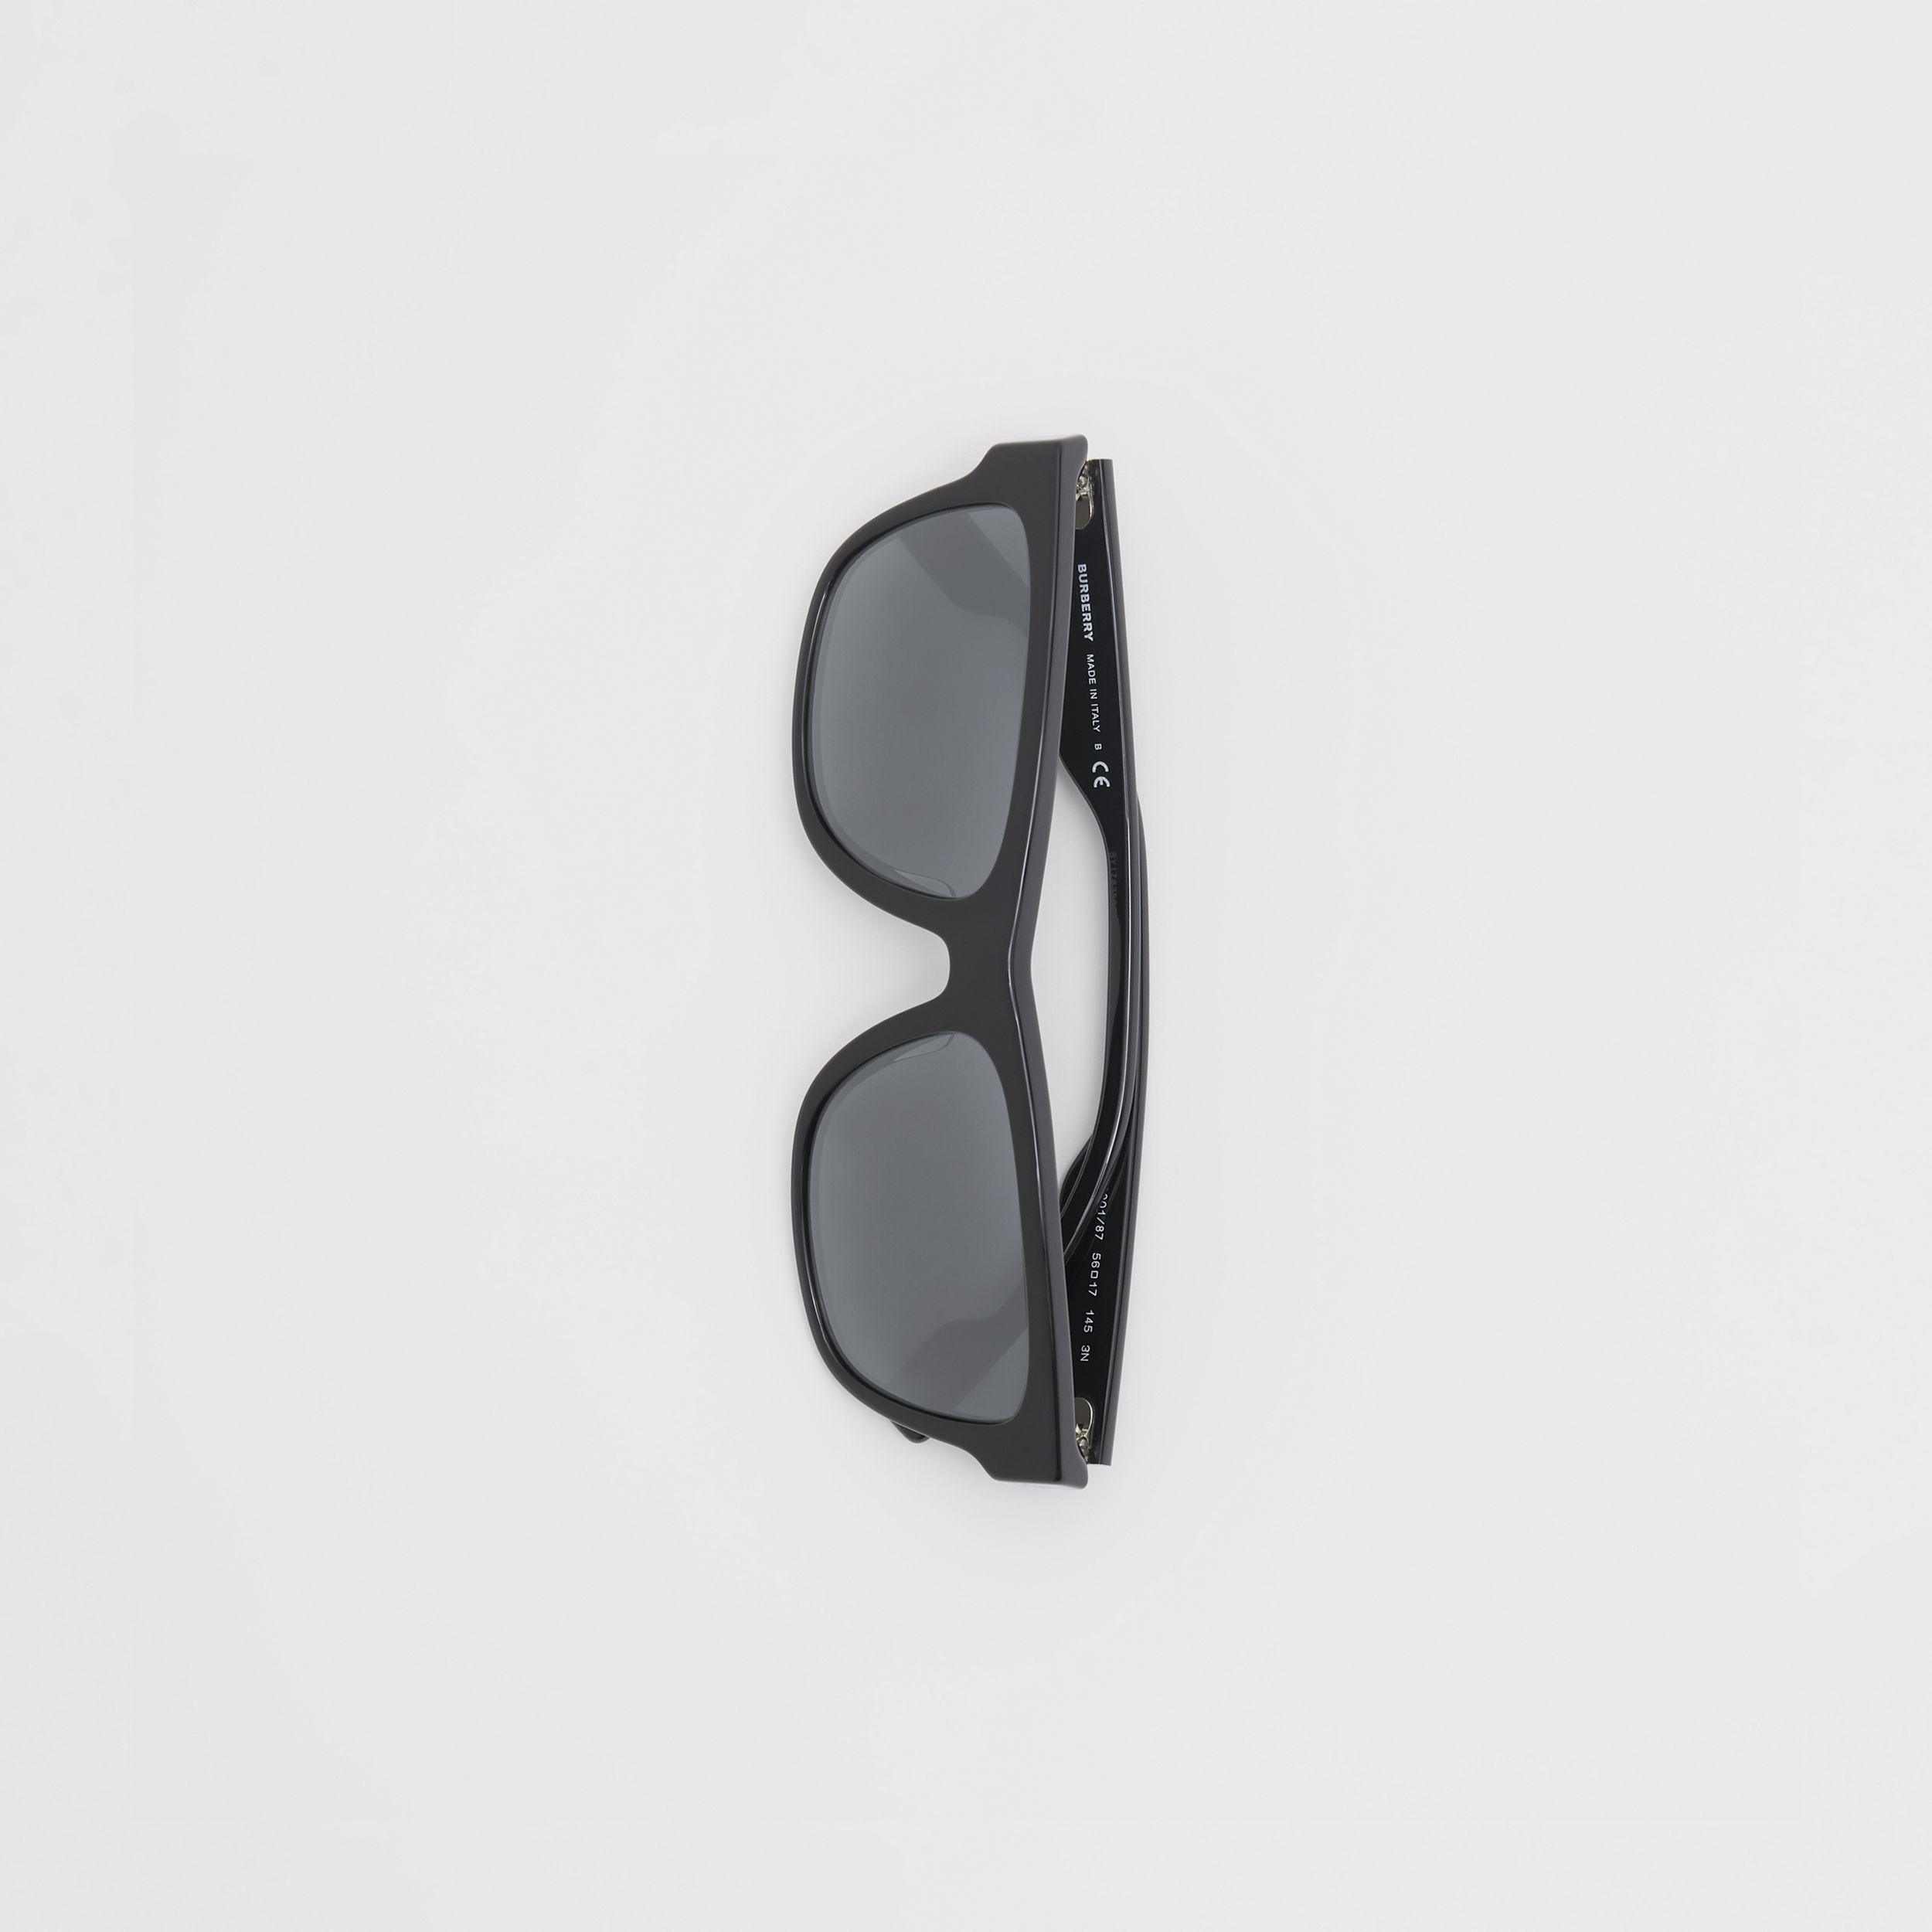 Square Frame Sunglasses in Black - Men | Burberry - 4